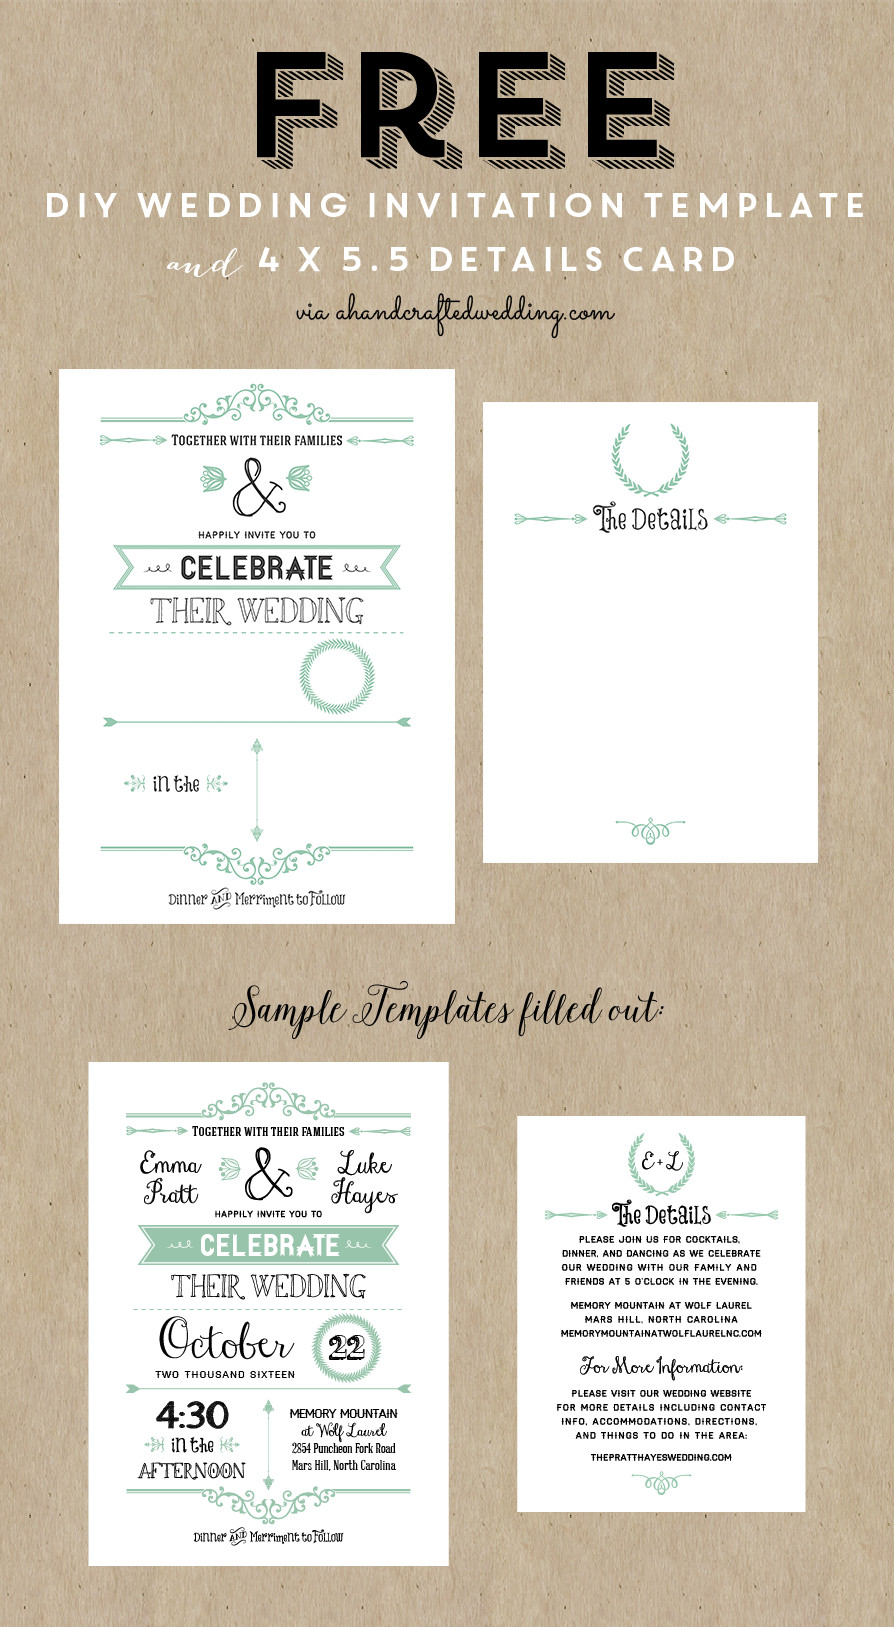 Best ideas about DIY Wedding Invite Templates . Save or Pin Best 25 Free wedding invitation templates ideas on Now.